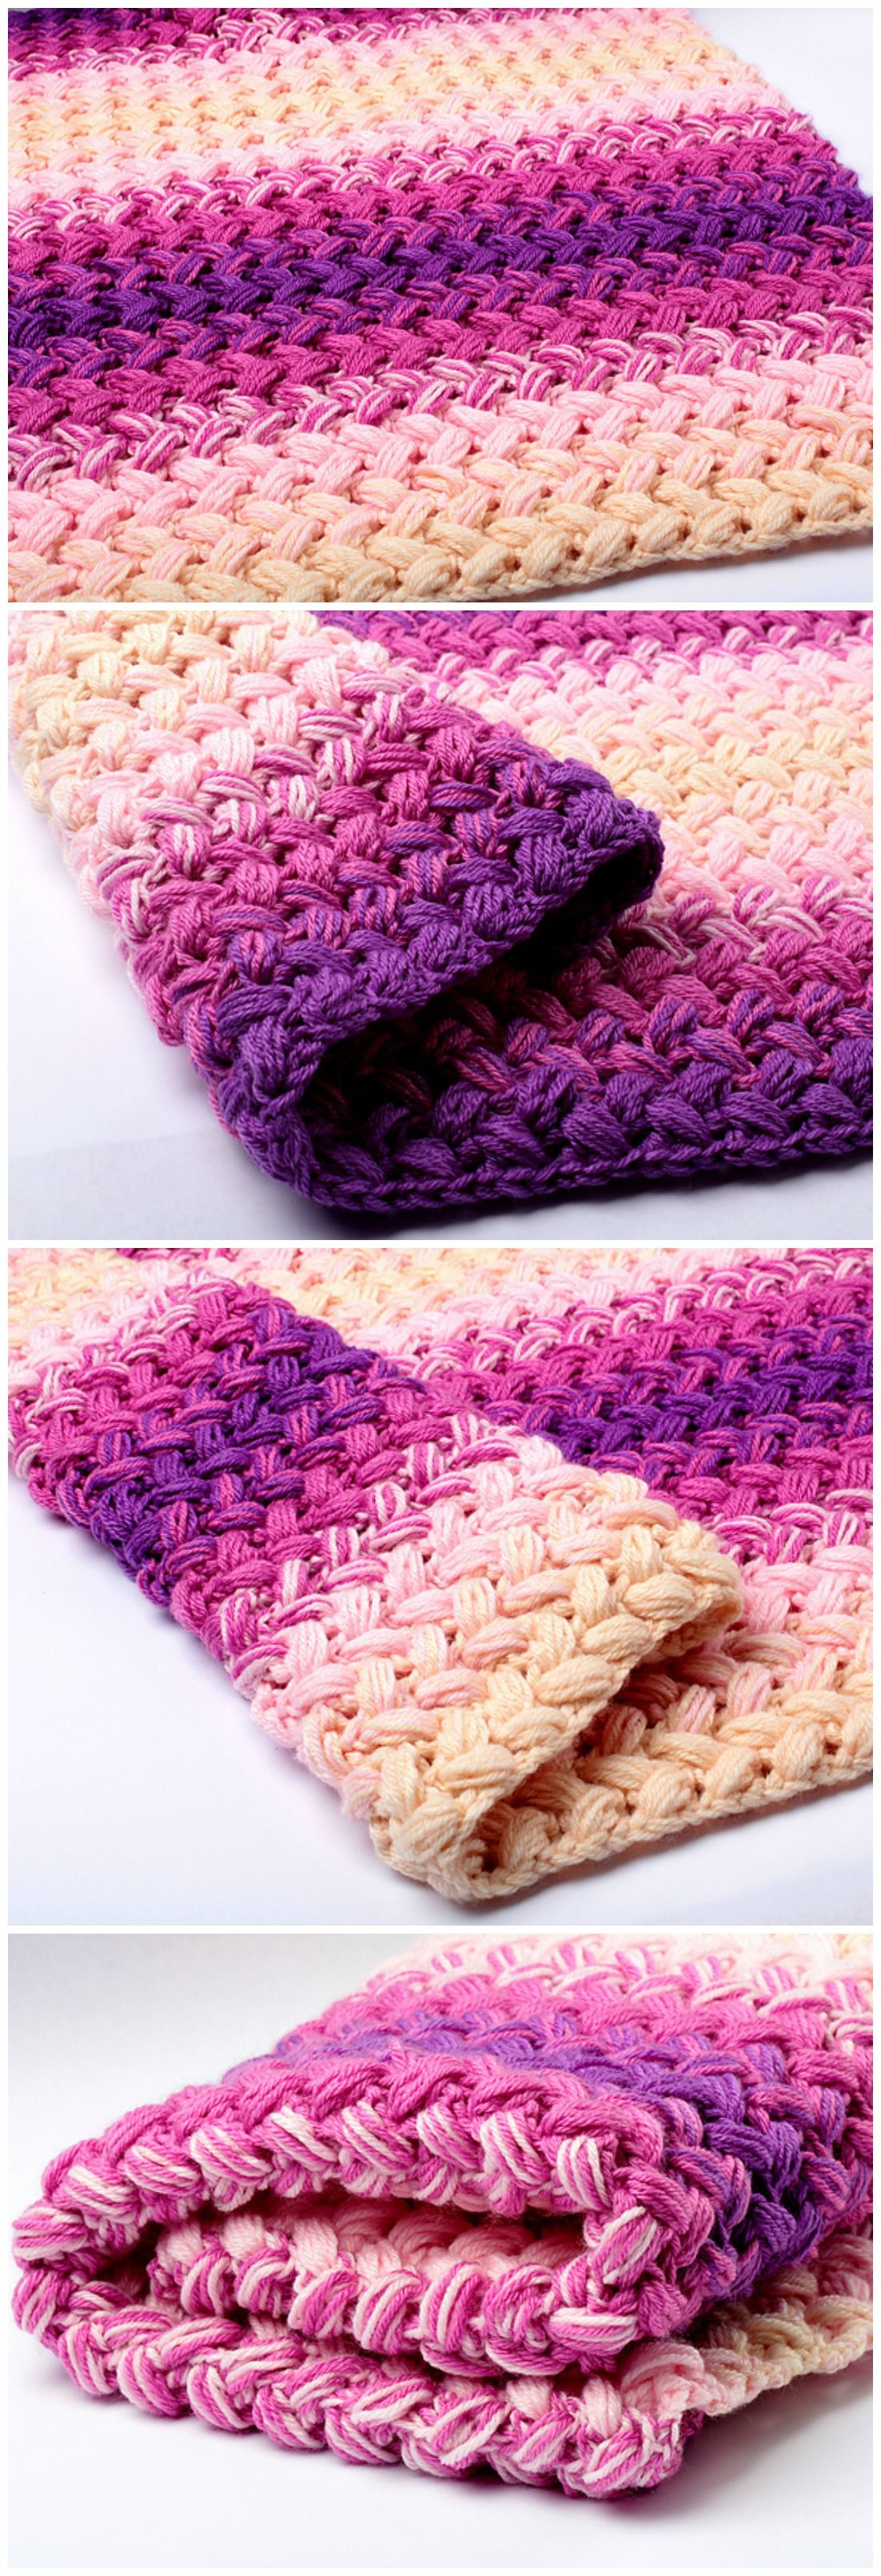 Crochet Zig Zag Blanket | All things crochet & knit | Pinterest ...